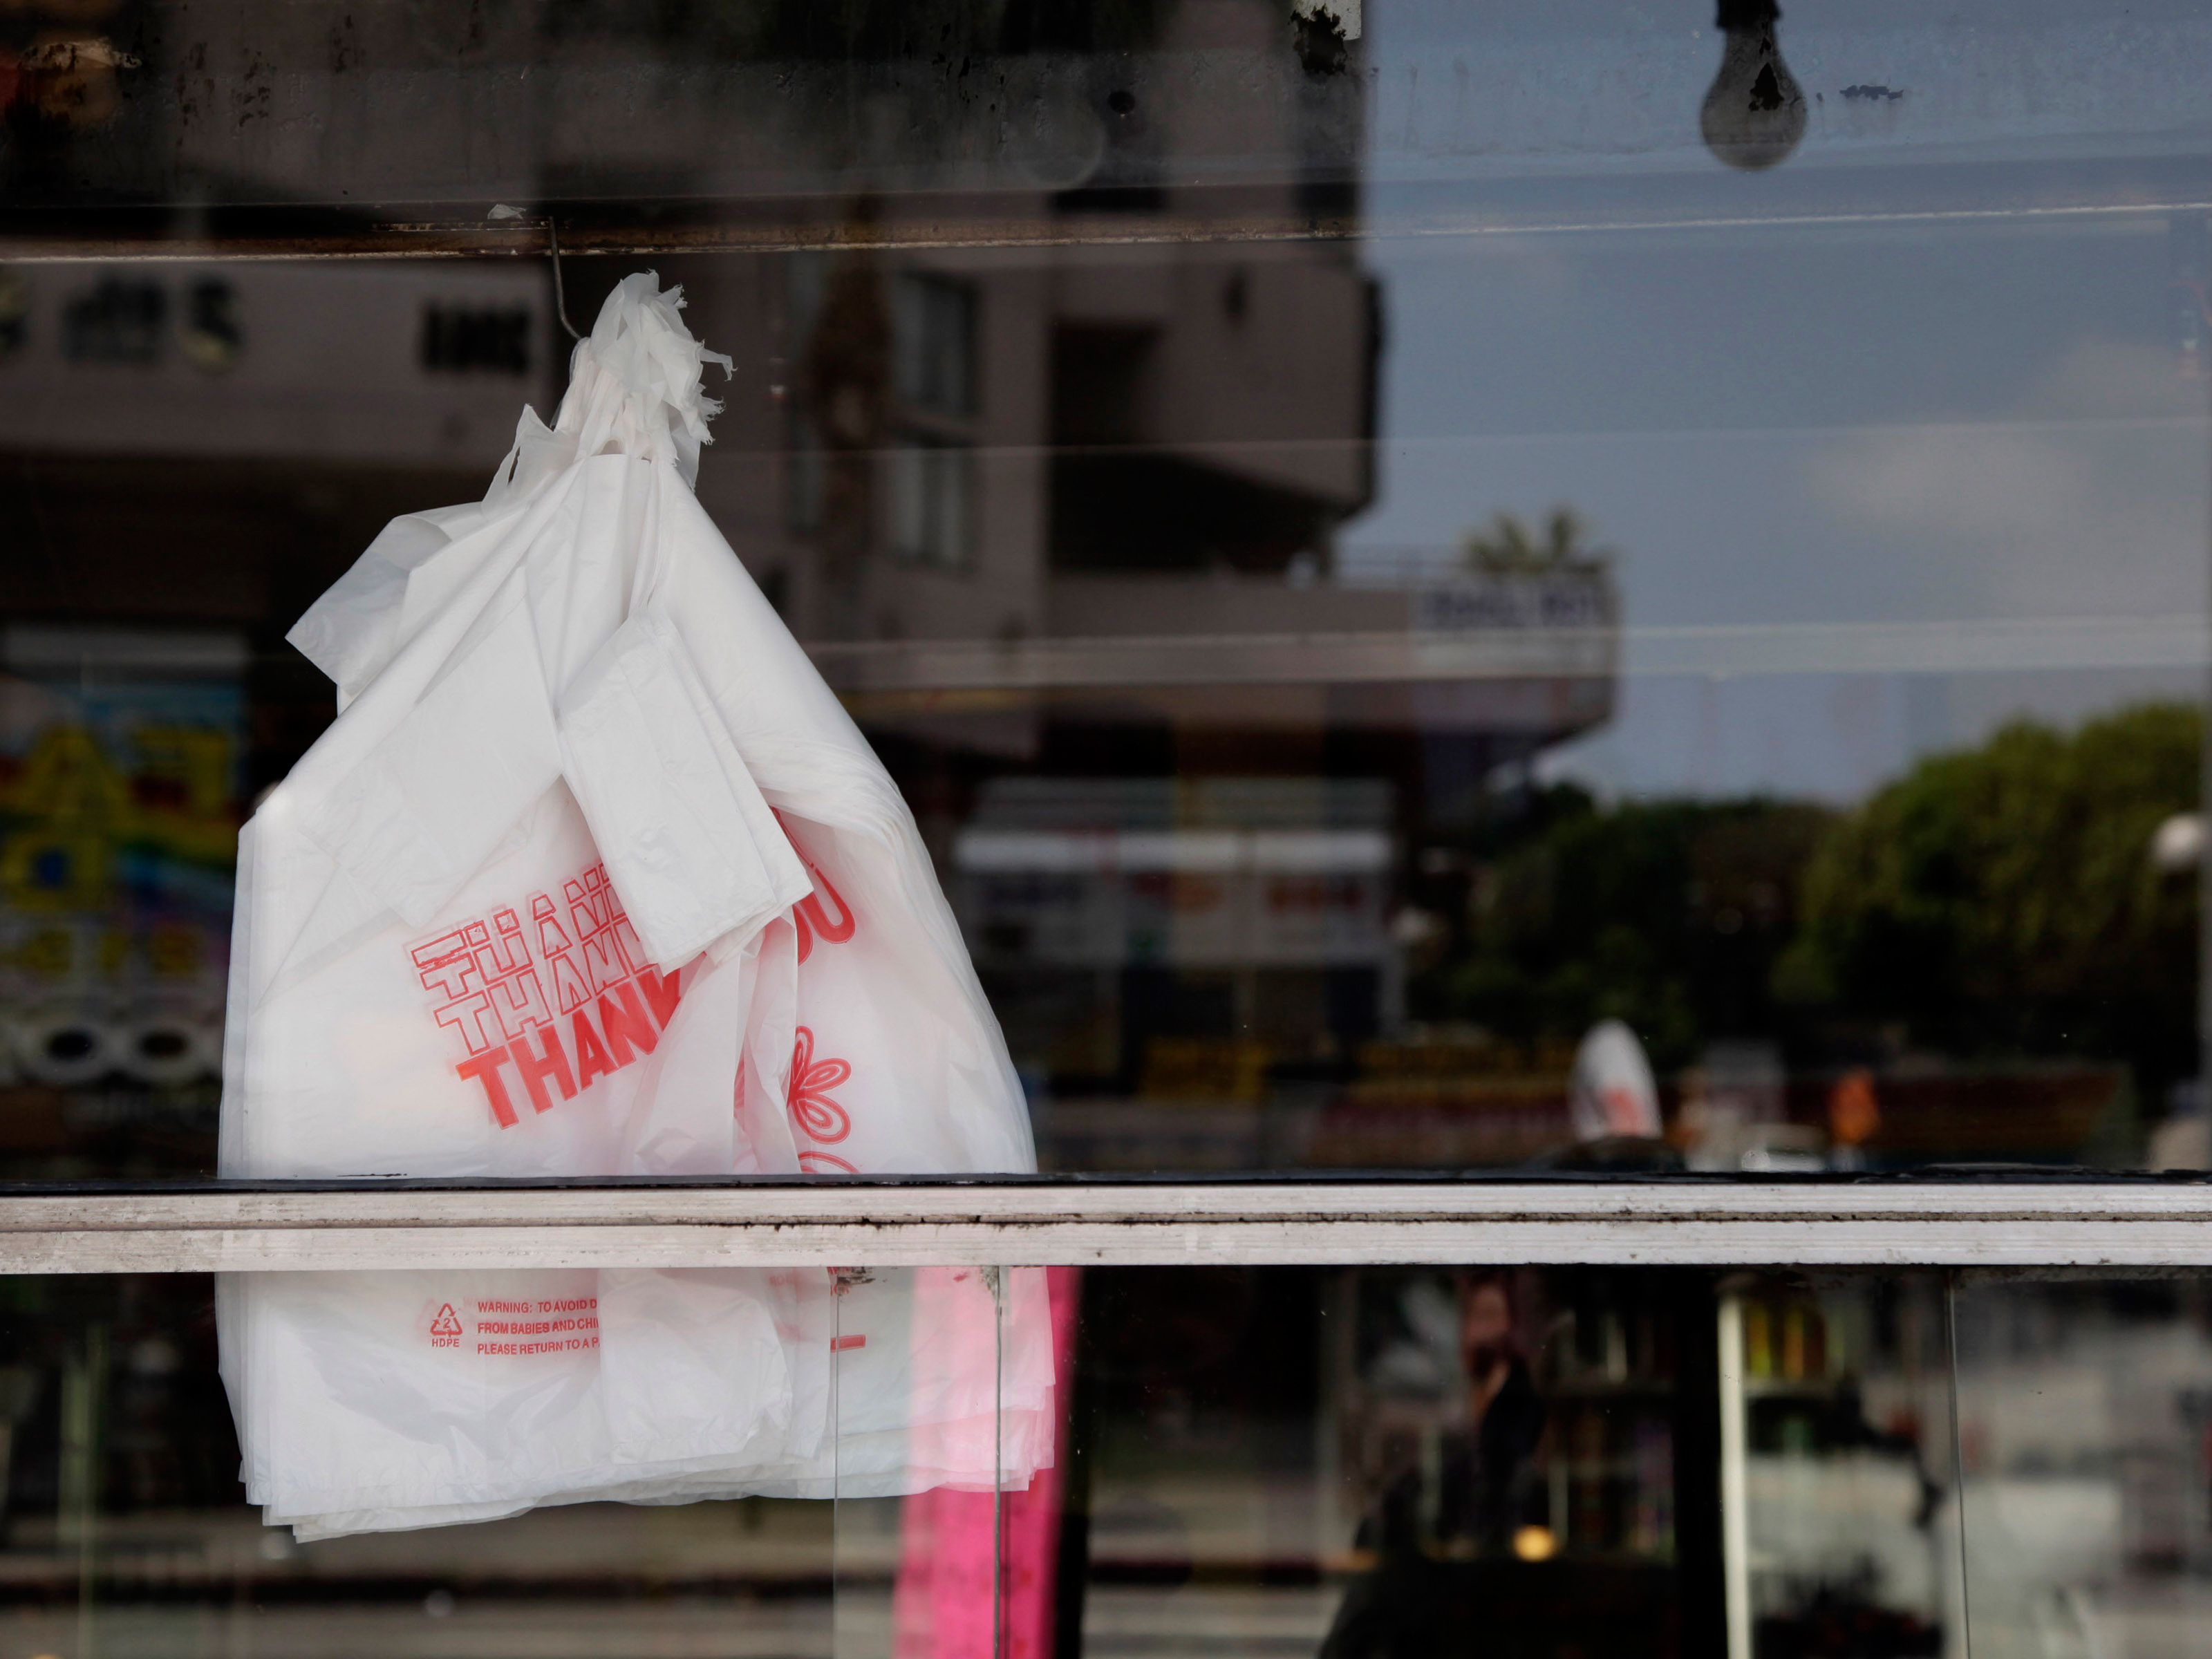 bhutan bans plastic bags essay Plastic bags are not as what are all the arguments against banning plastic bags and plastic bags can be reused more often than paper bags plastic bag bans.